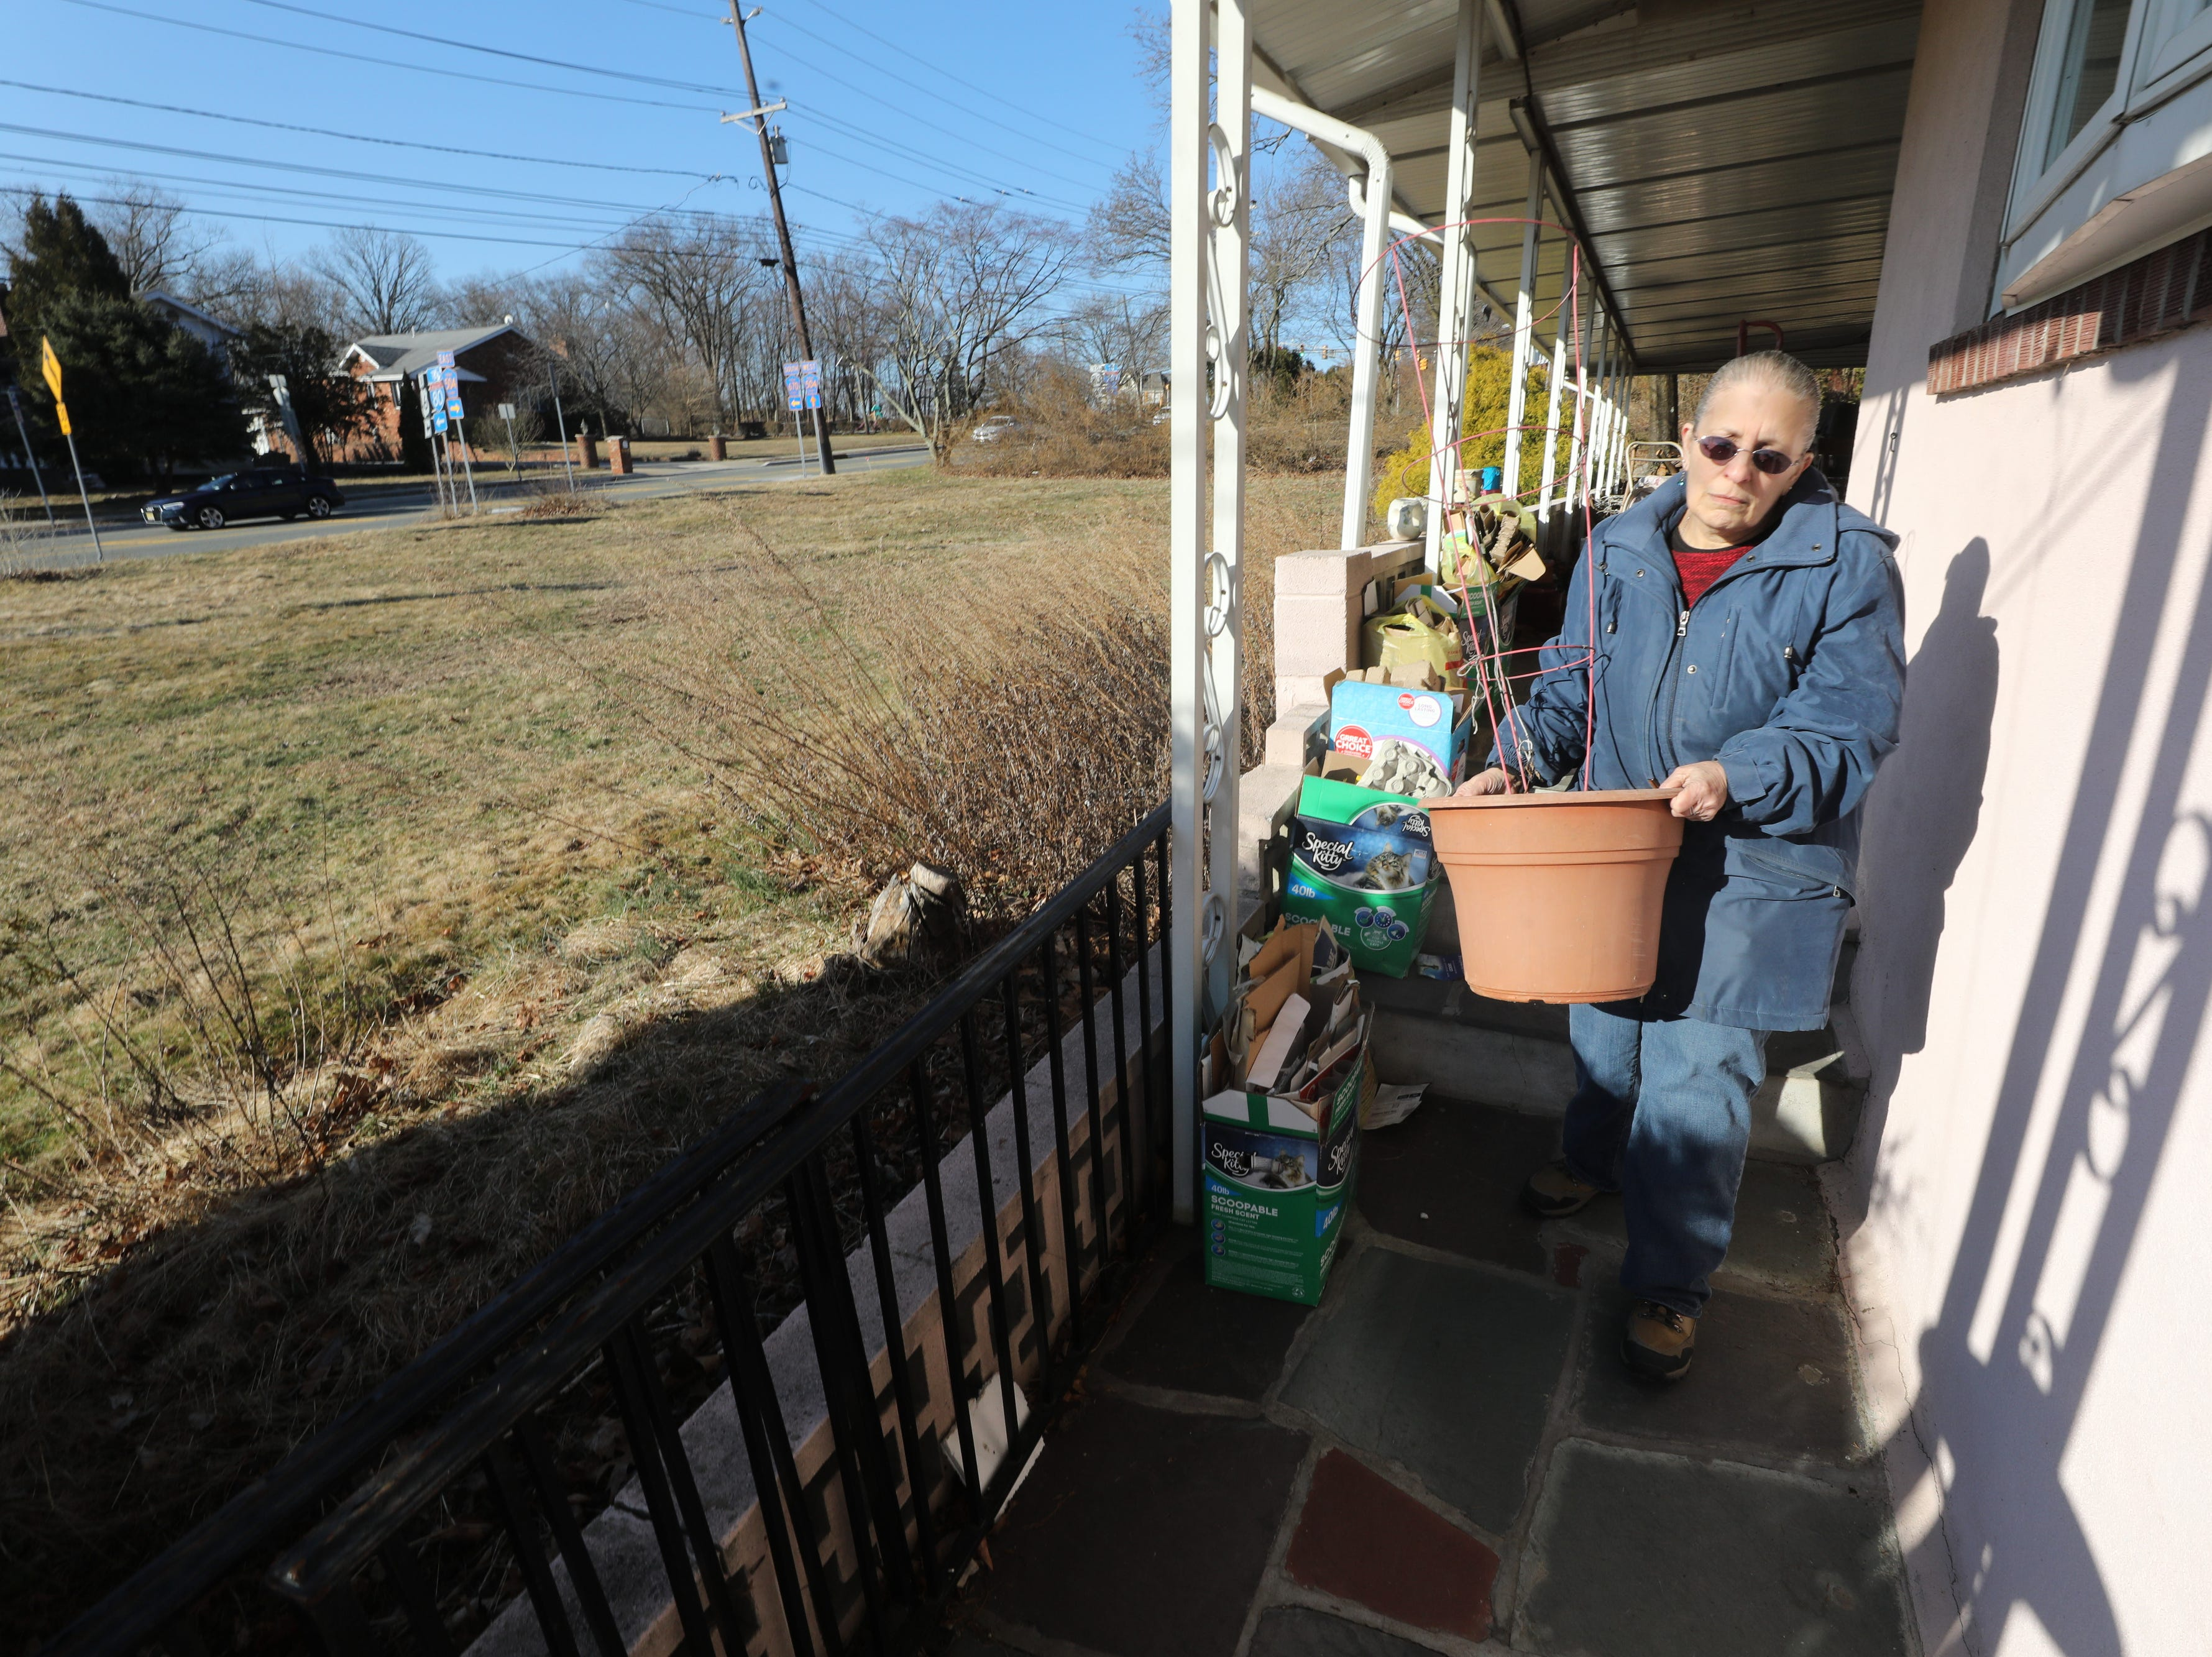 Madeline D'Alessandro carries some of her belongings to her car as she clears out the house she and her brother are being evicted from on March 19, 2019, after failing to pay the mortgage for the past 10 years.